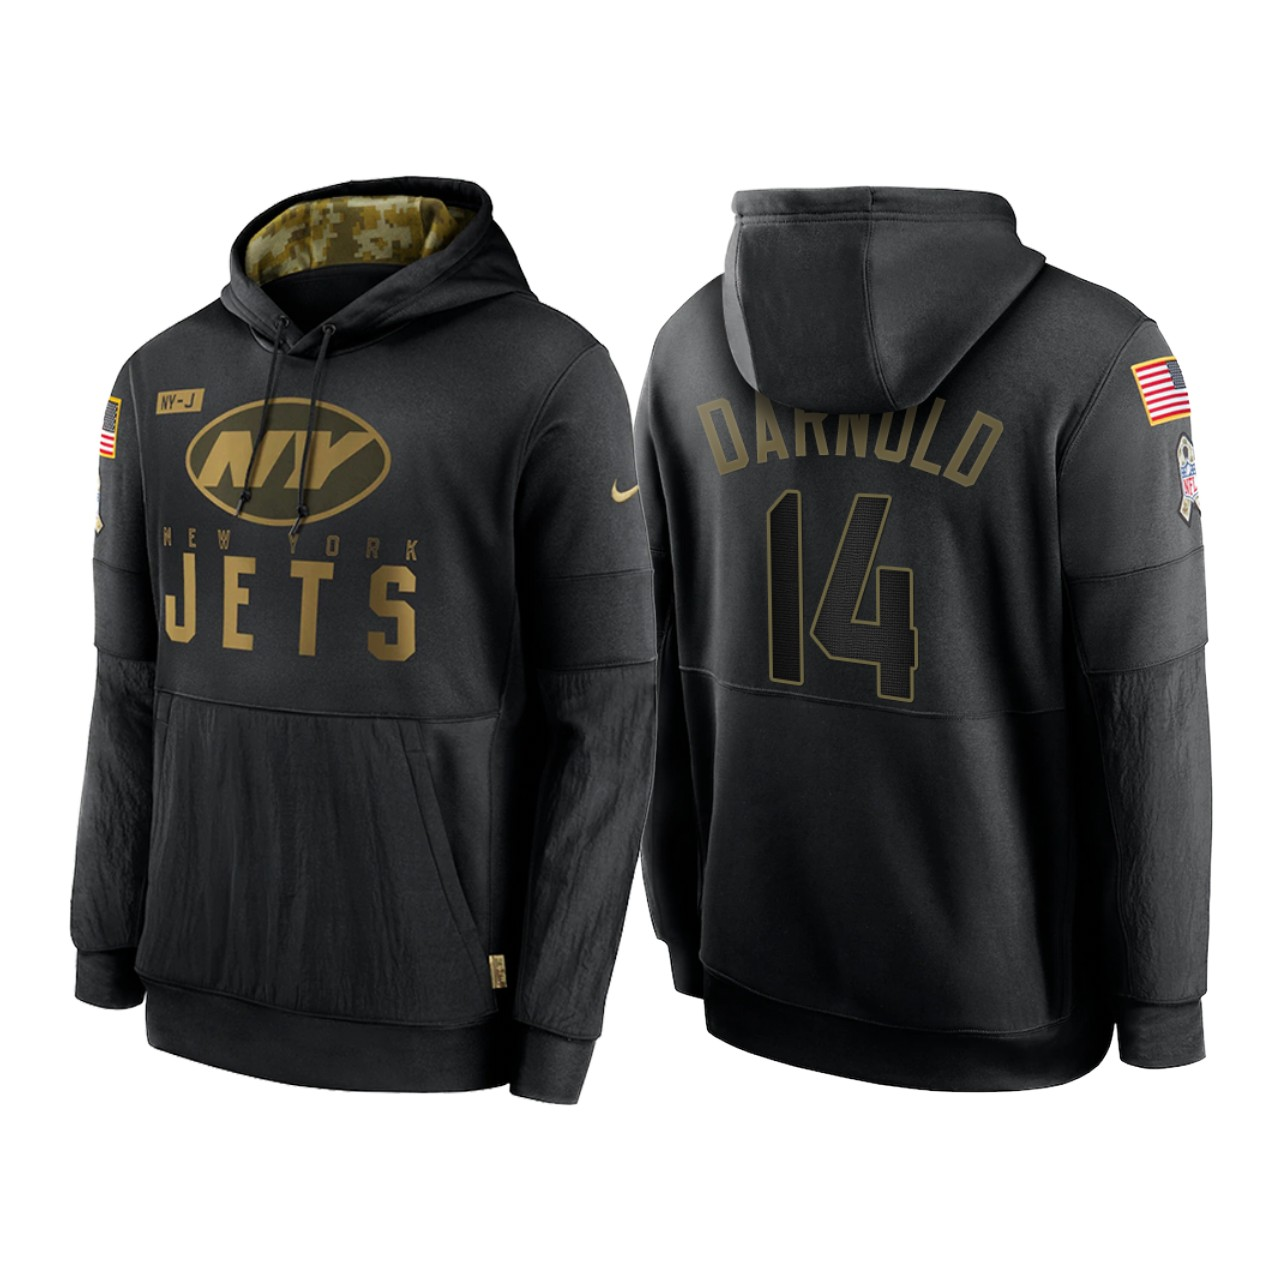 Men's New York Jets #14 Sam Darnold 2020 Black Salute to Service Sideline Performance Pullover Hoodie